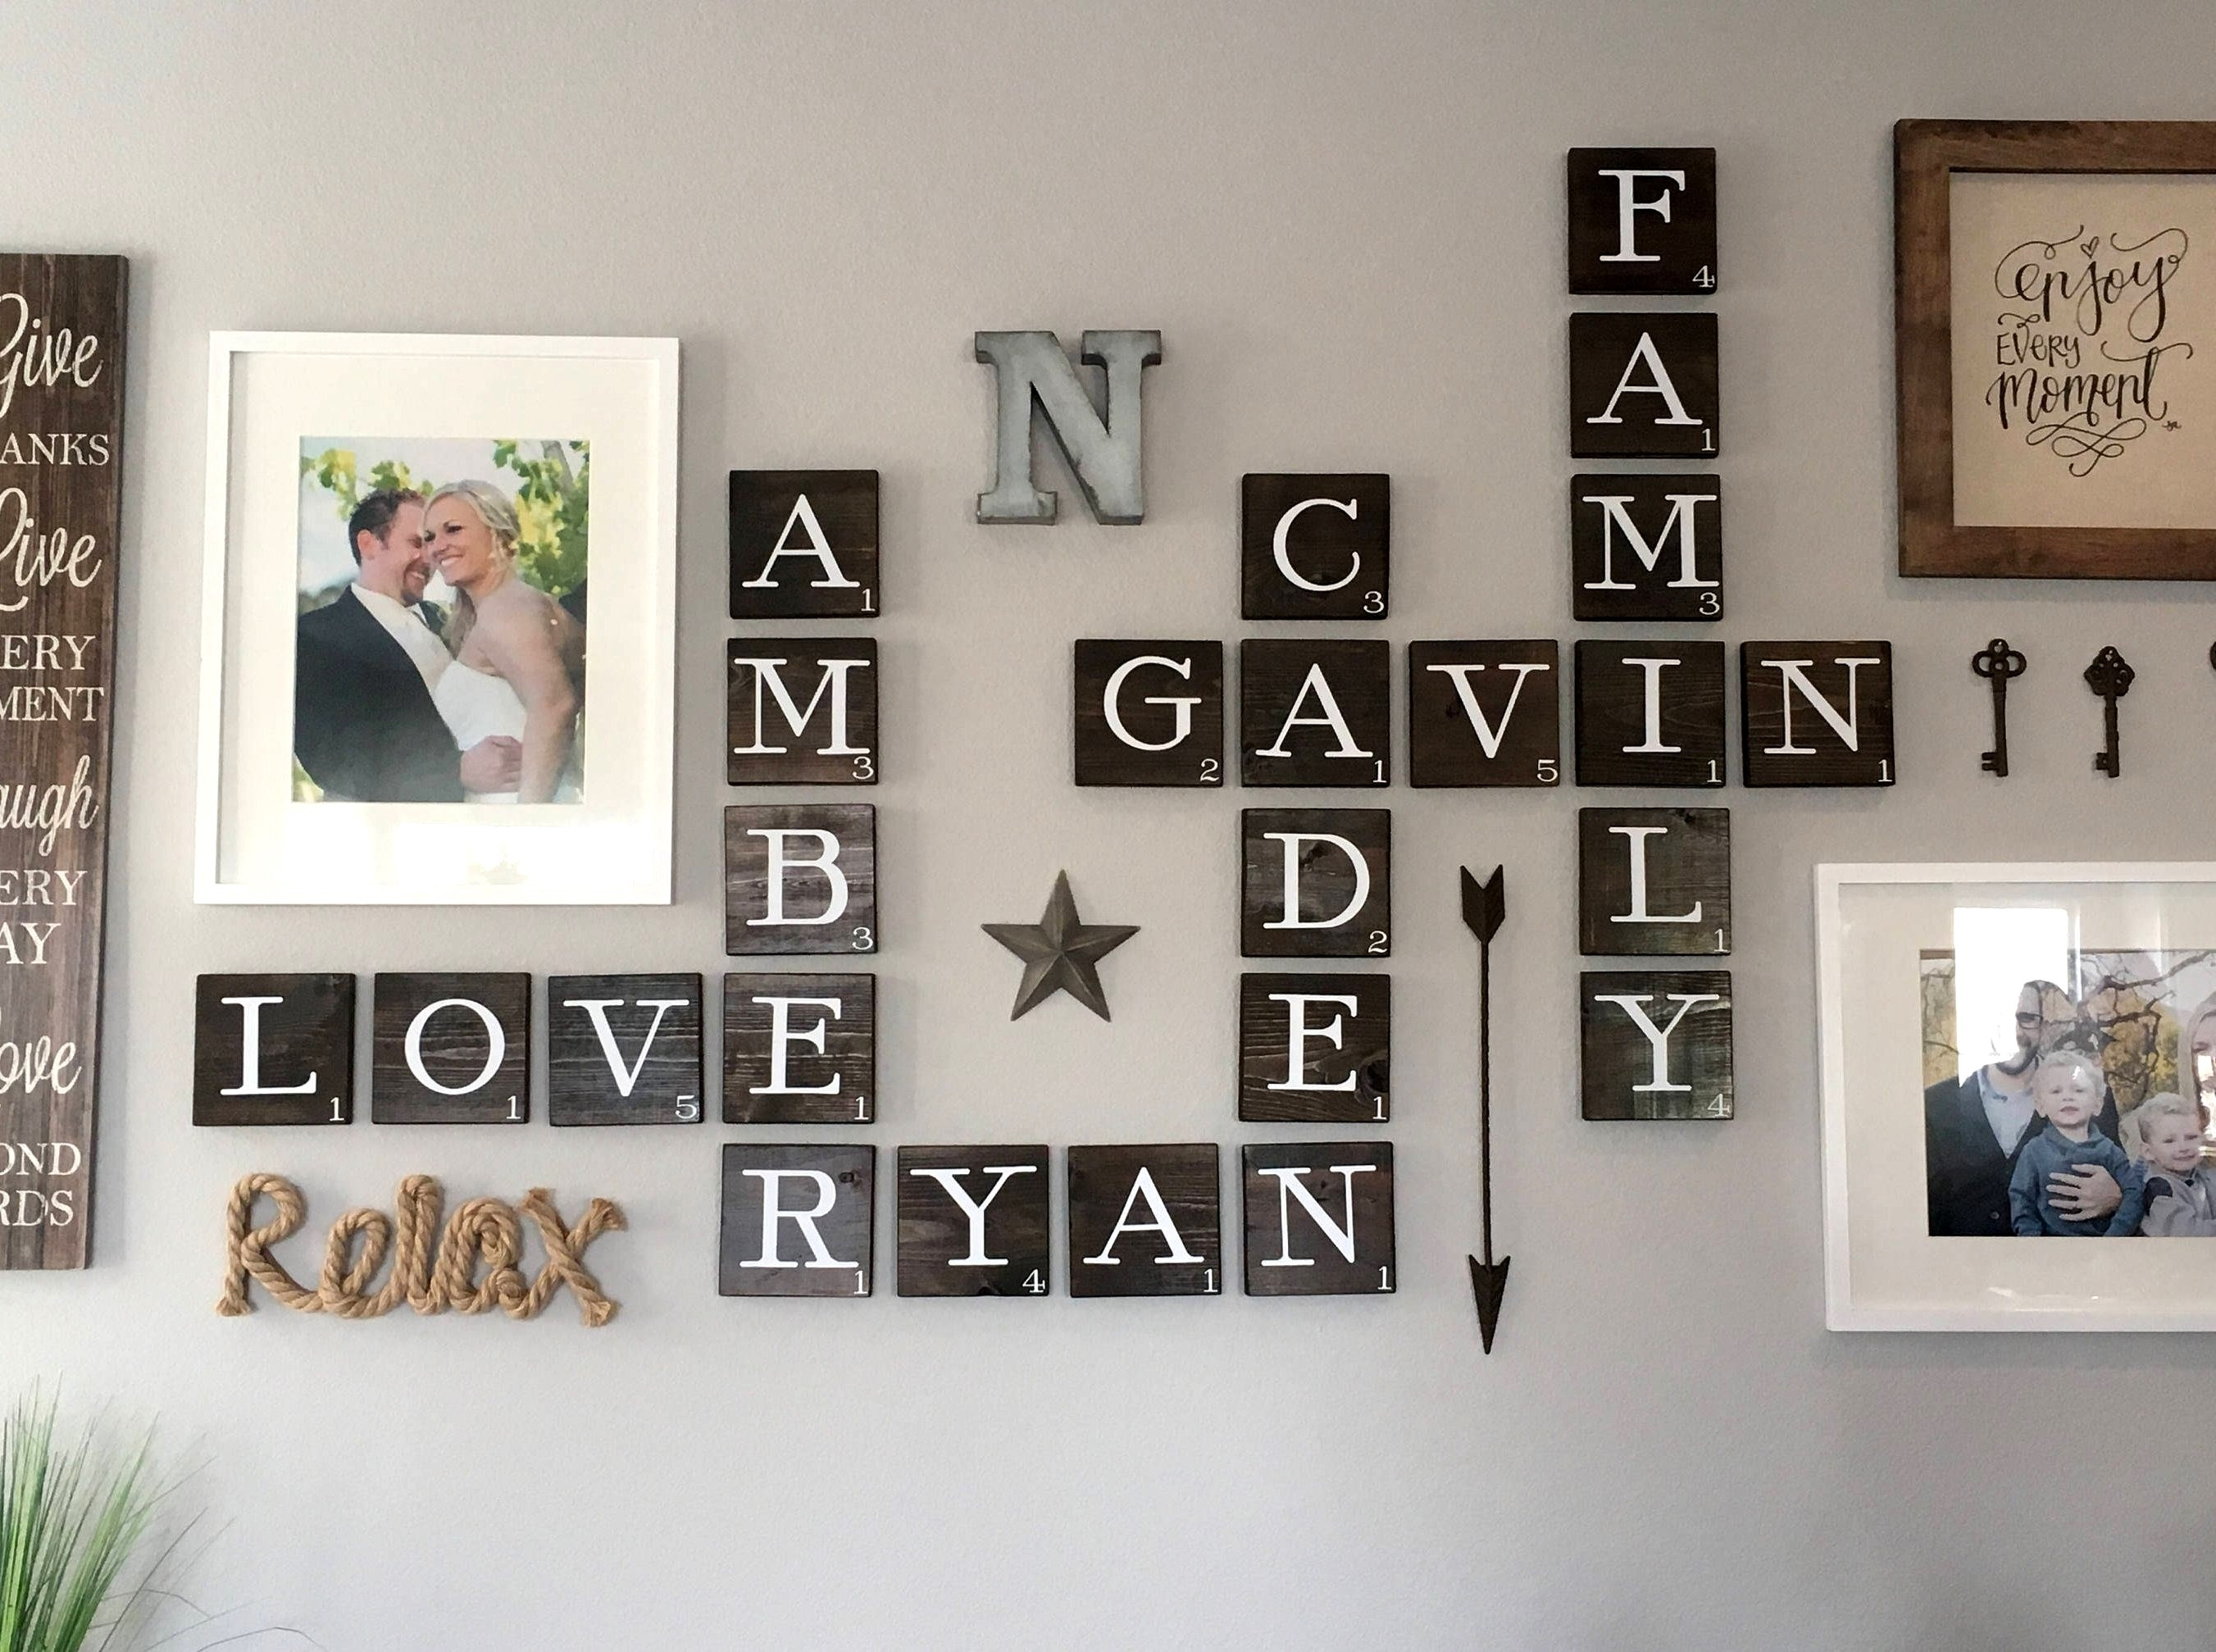 Wall Scrabble Tiles Wall Scrabble Scrabble Wall Tiles Scrabble Wall Pertaining To 2018 Scrabble Wall Art (View 3 of 20)